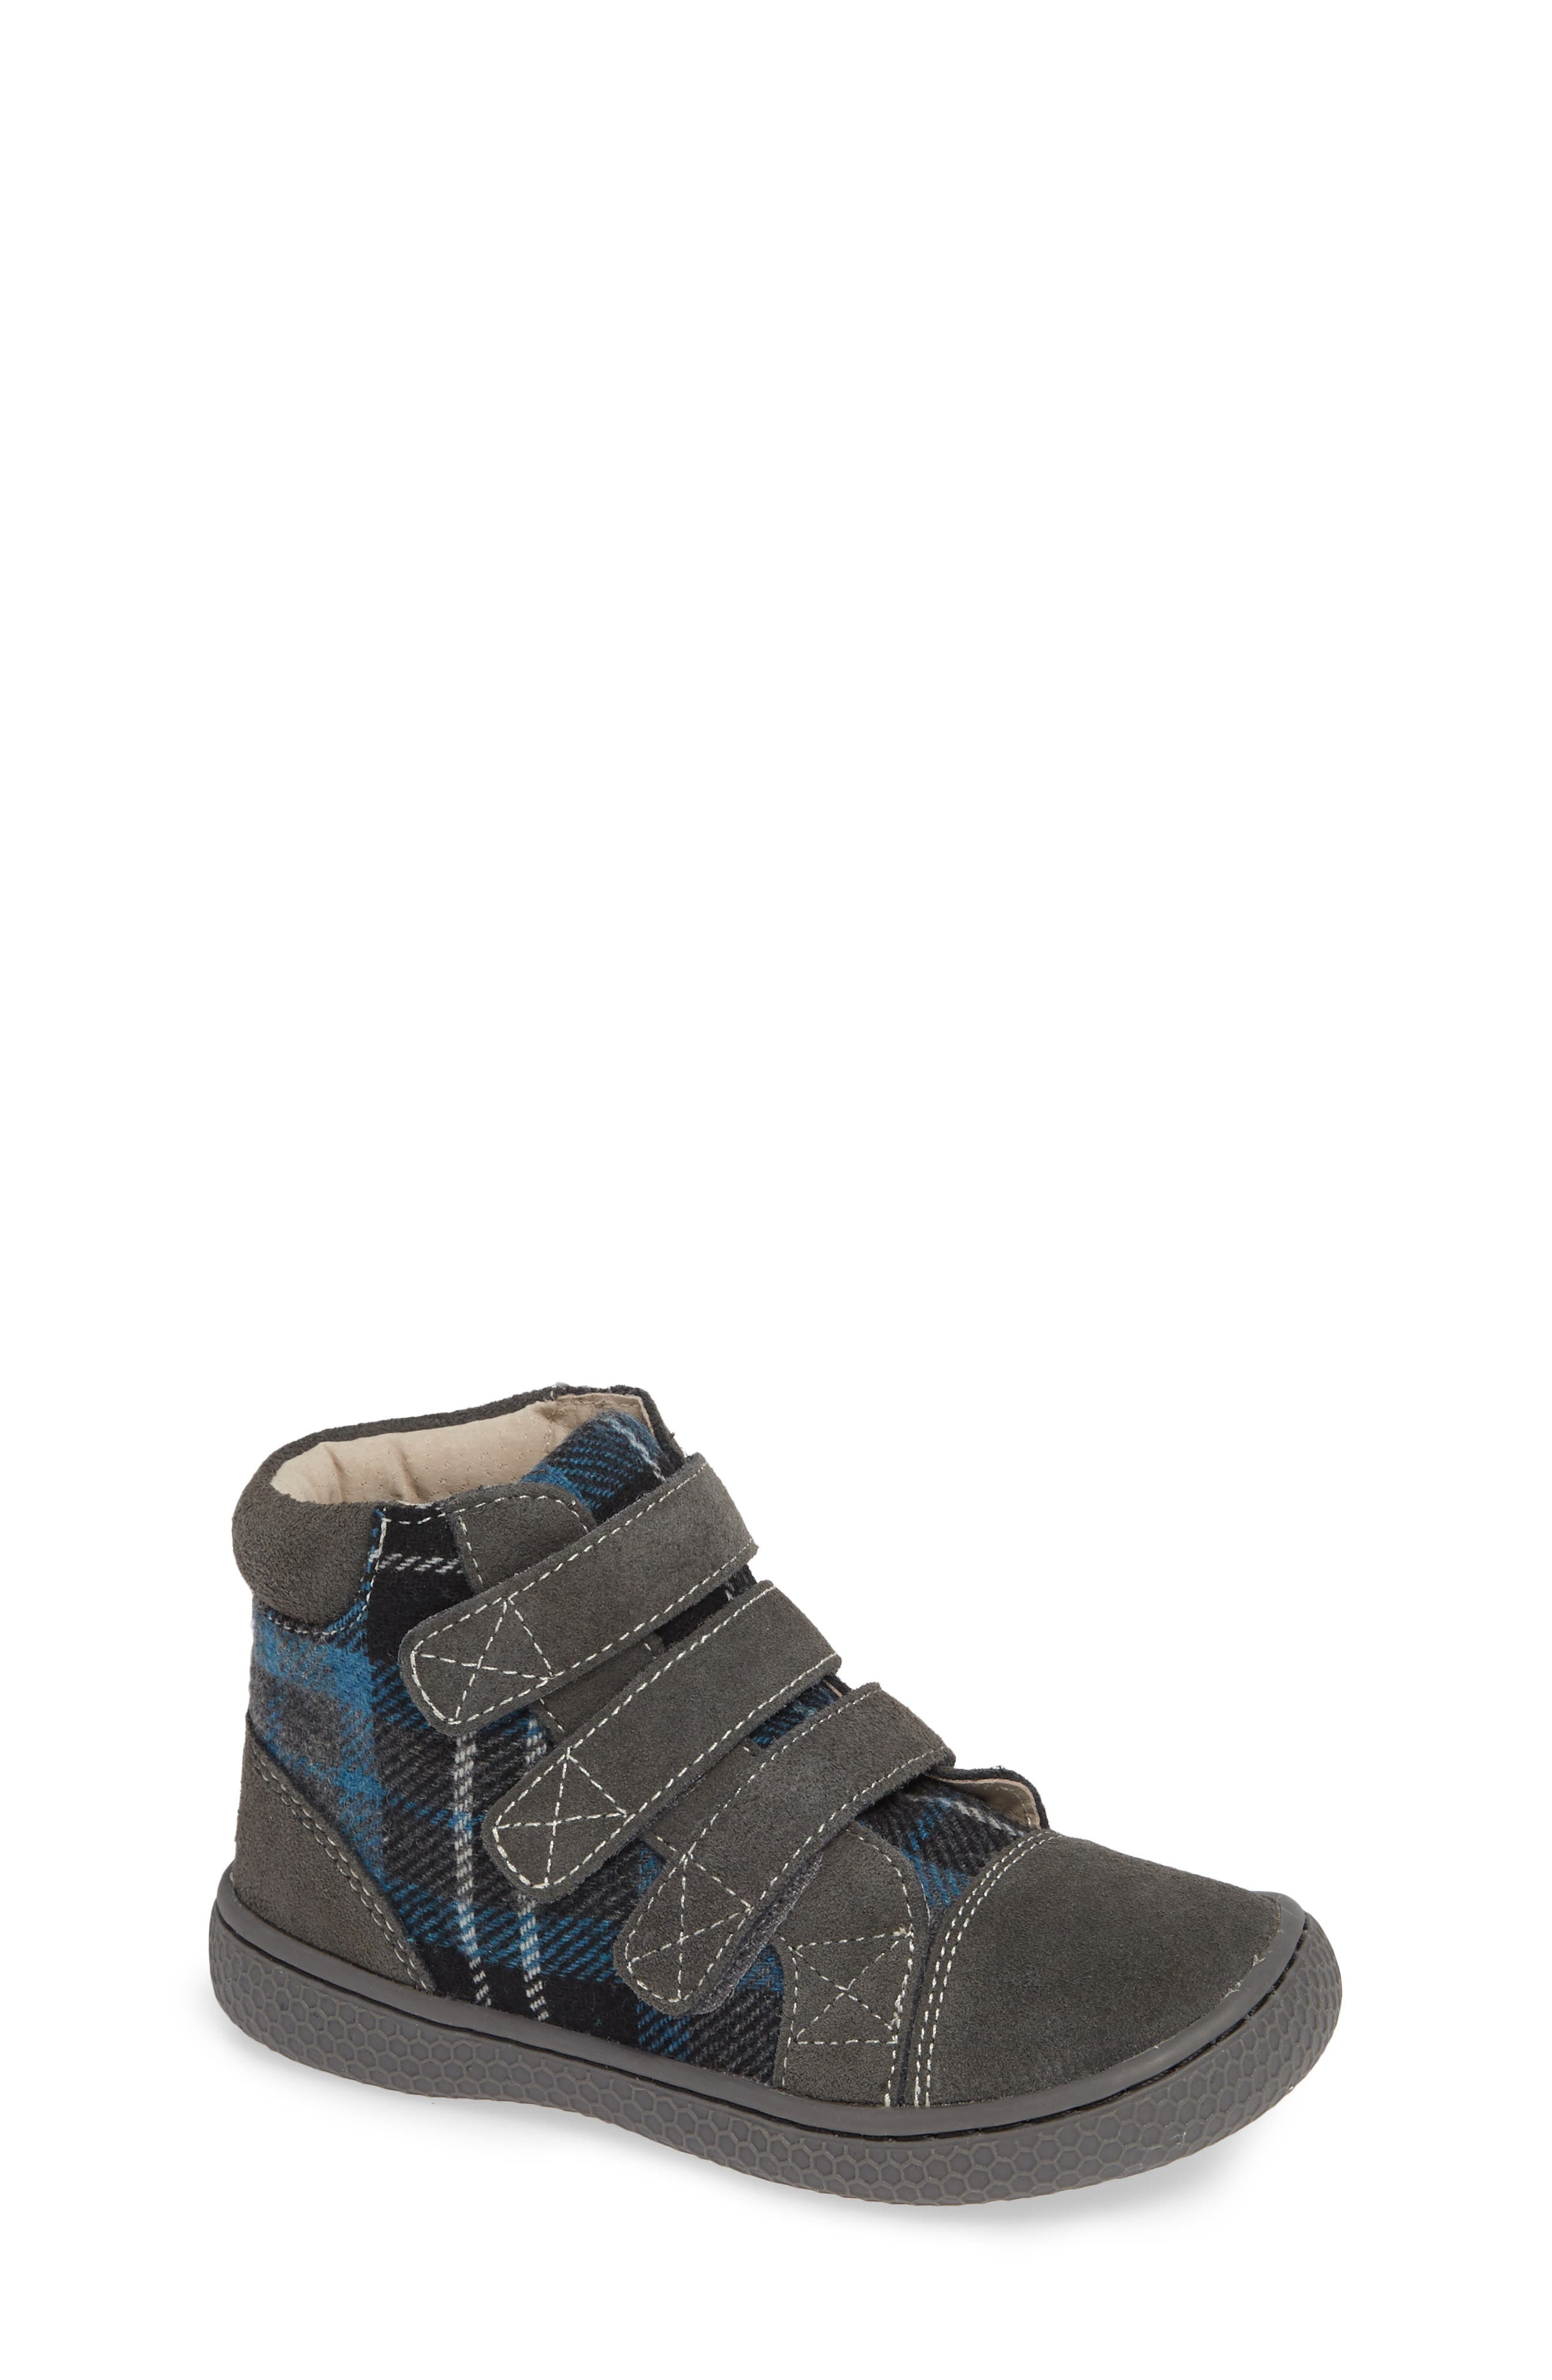 'Jamie' High Top Sneaker,                         Main,                         color, GRAY PLAID